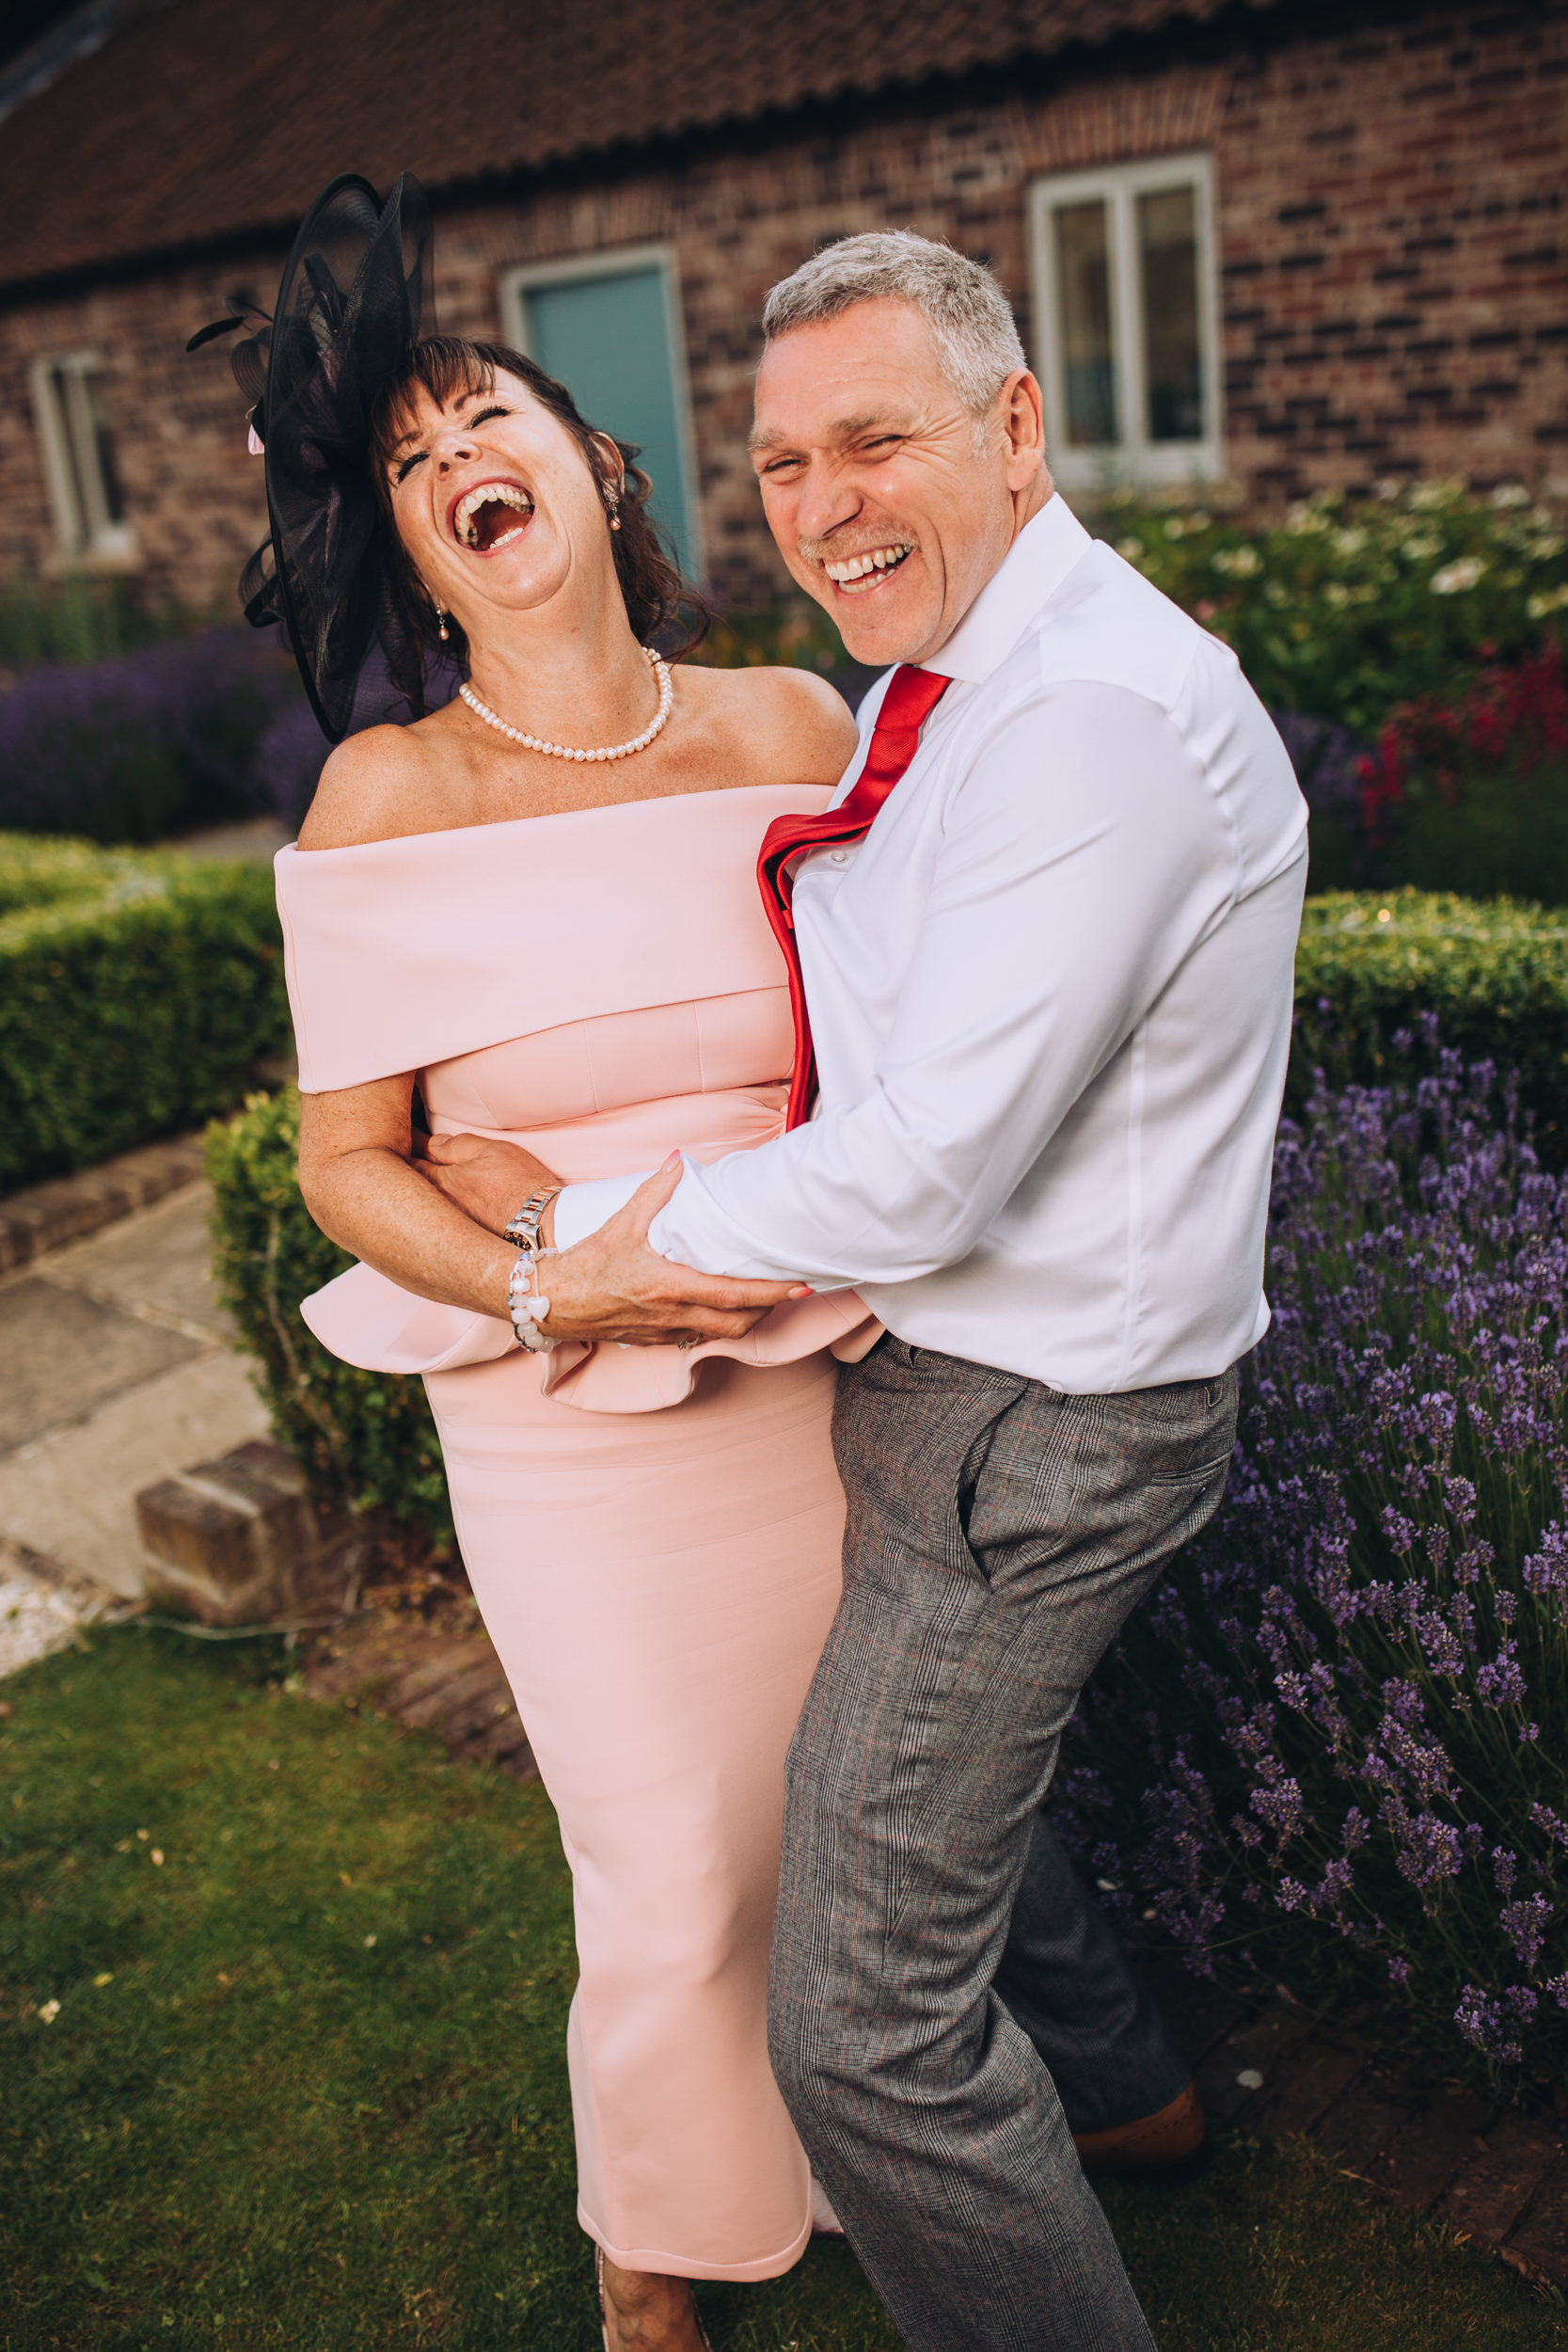 priory cottages wetherby wedding photographers67.jpg